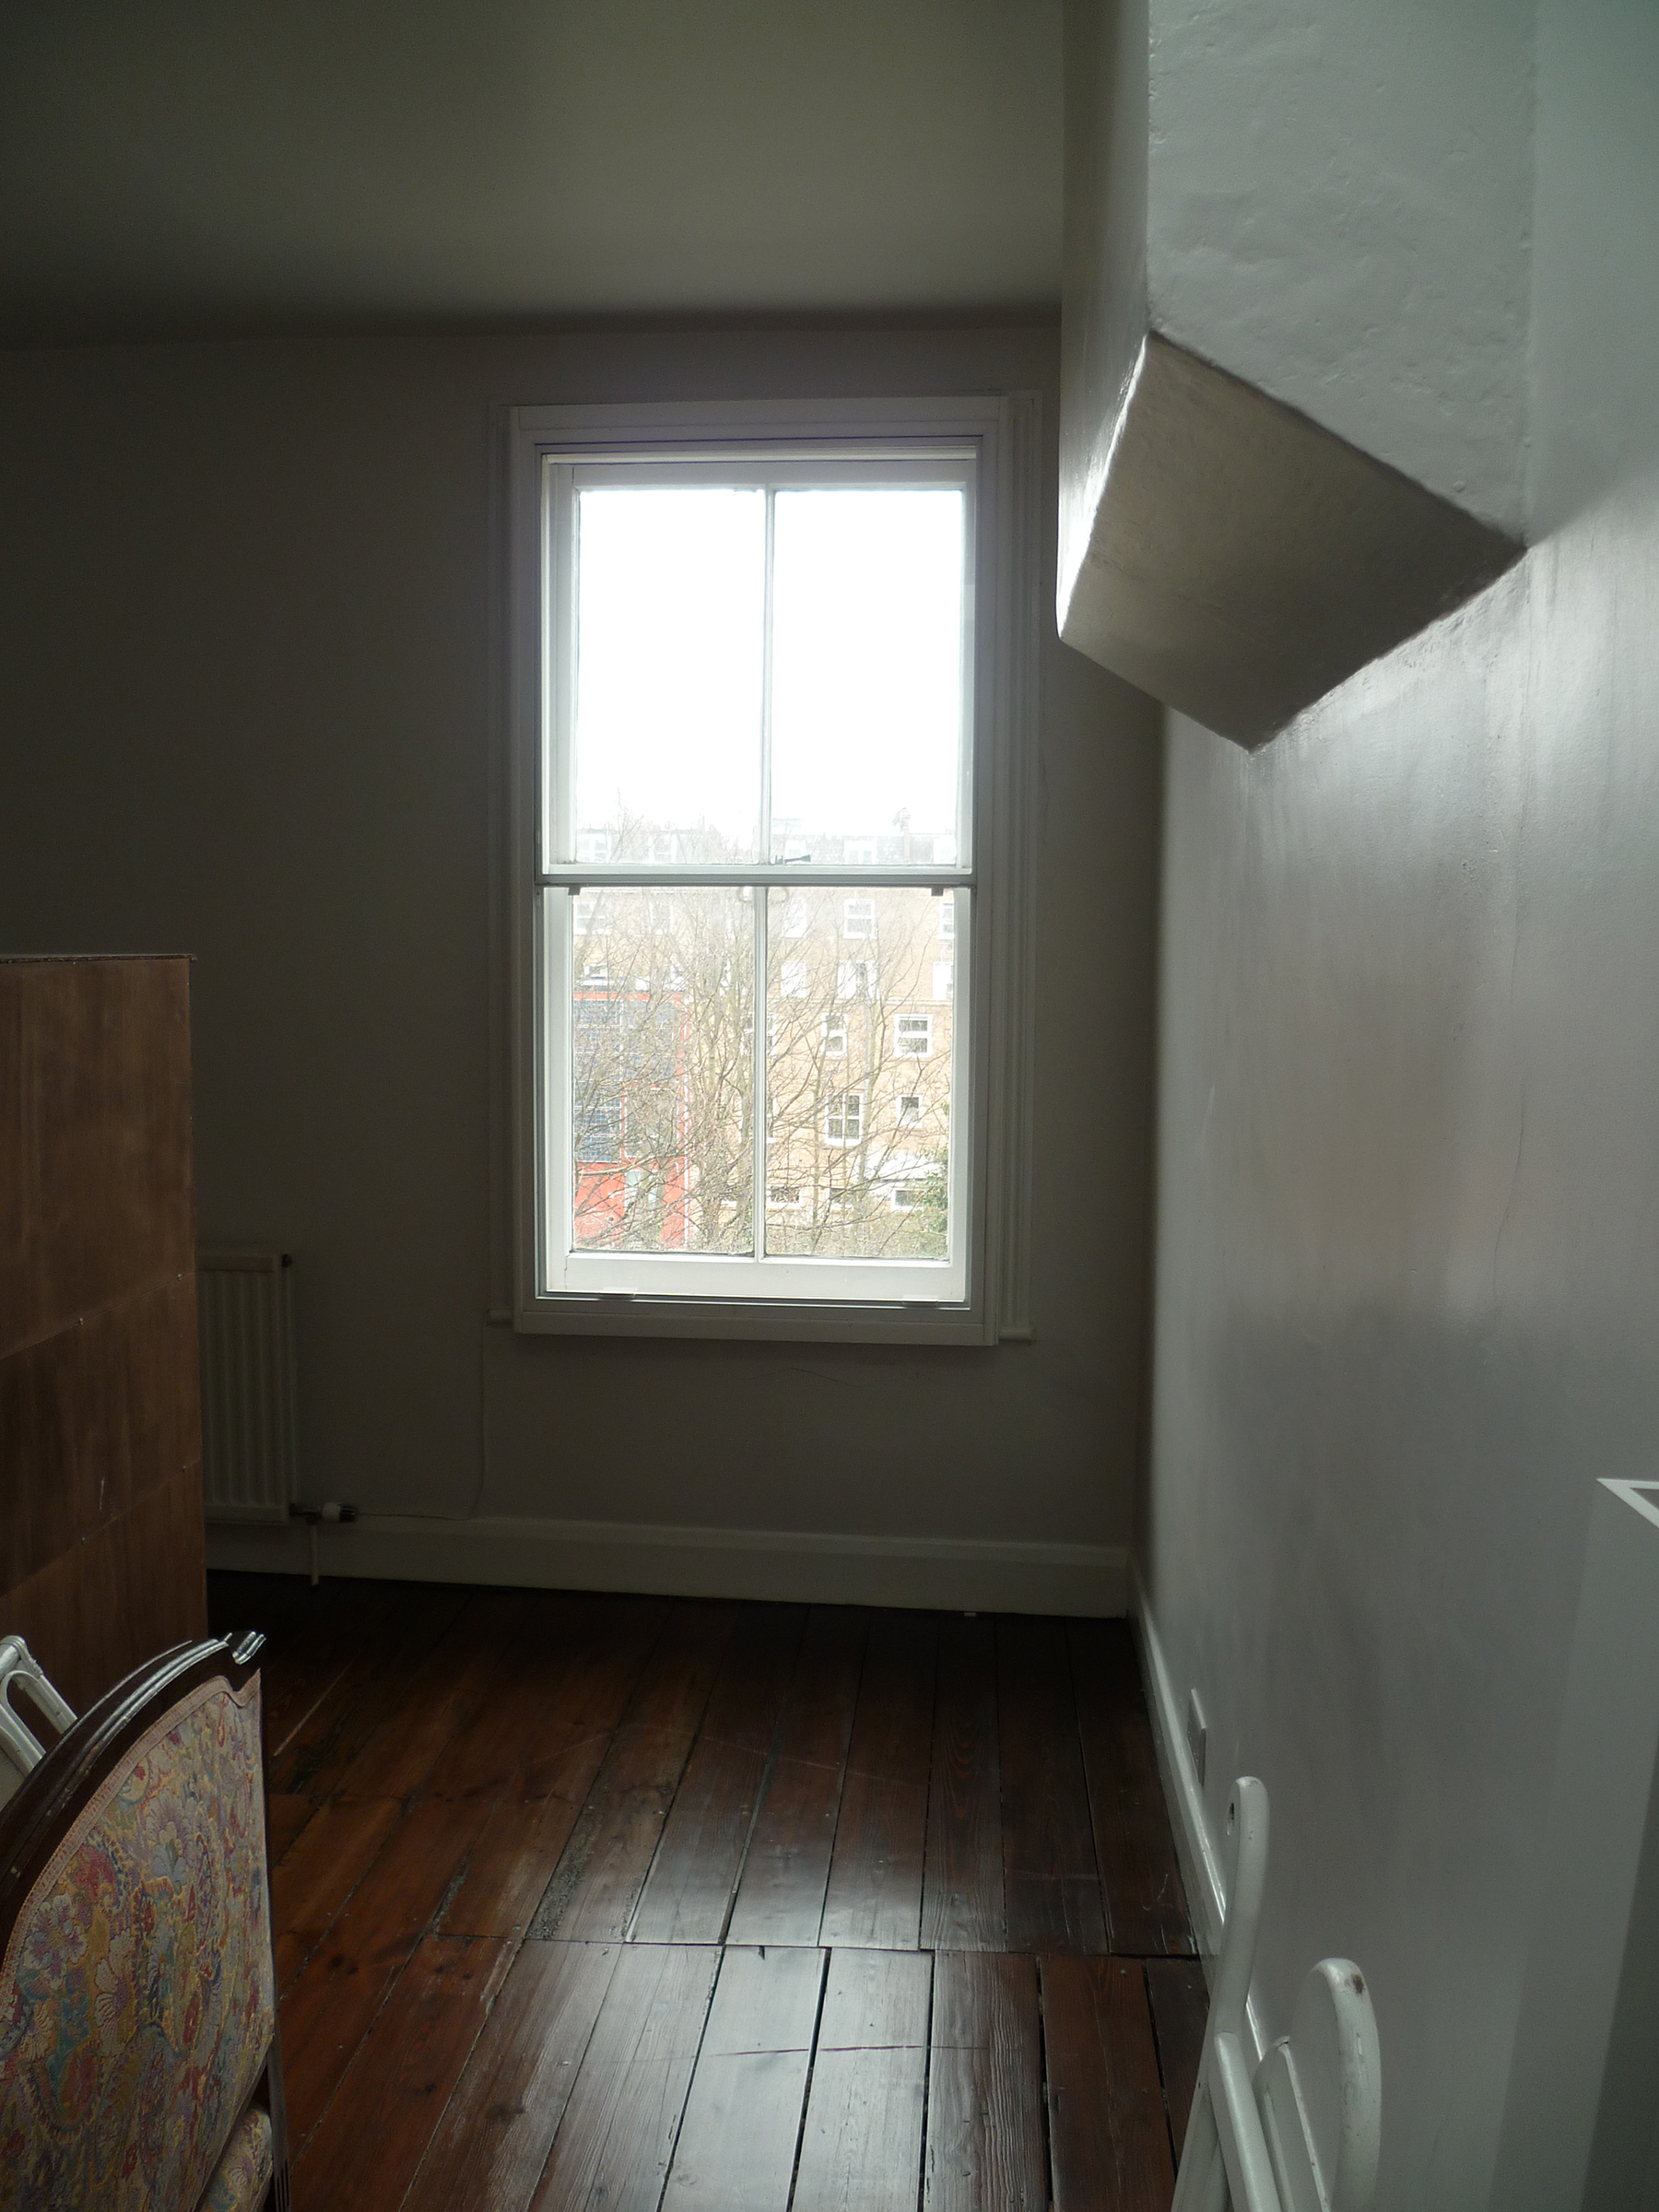 Preciously Me blog : ORC guest participant - Bedroom before